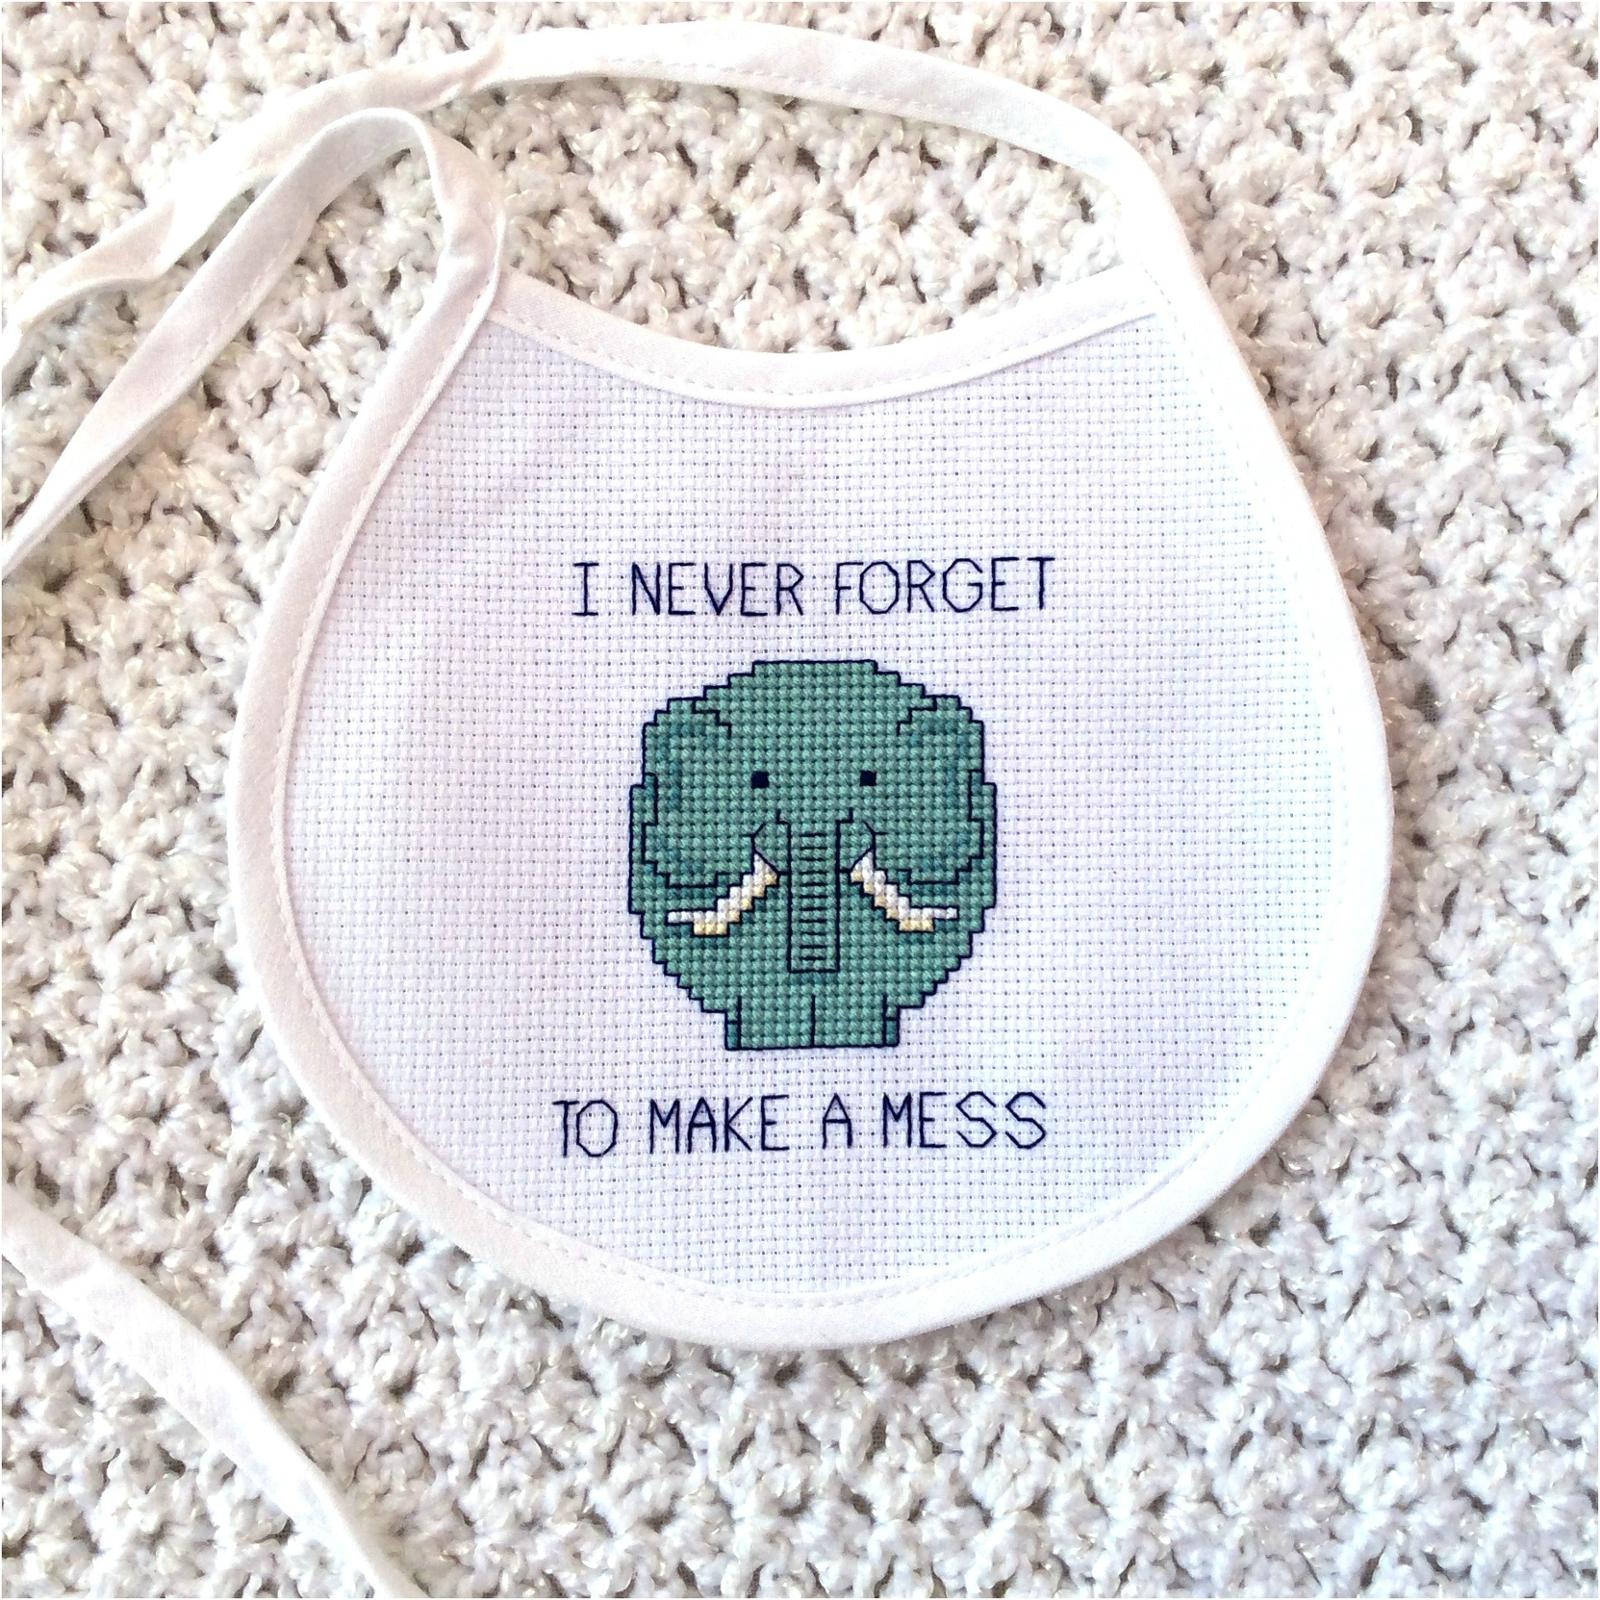 Cute Embroidery Patterns 5 Embroidery Sayings For Ba Bibs